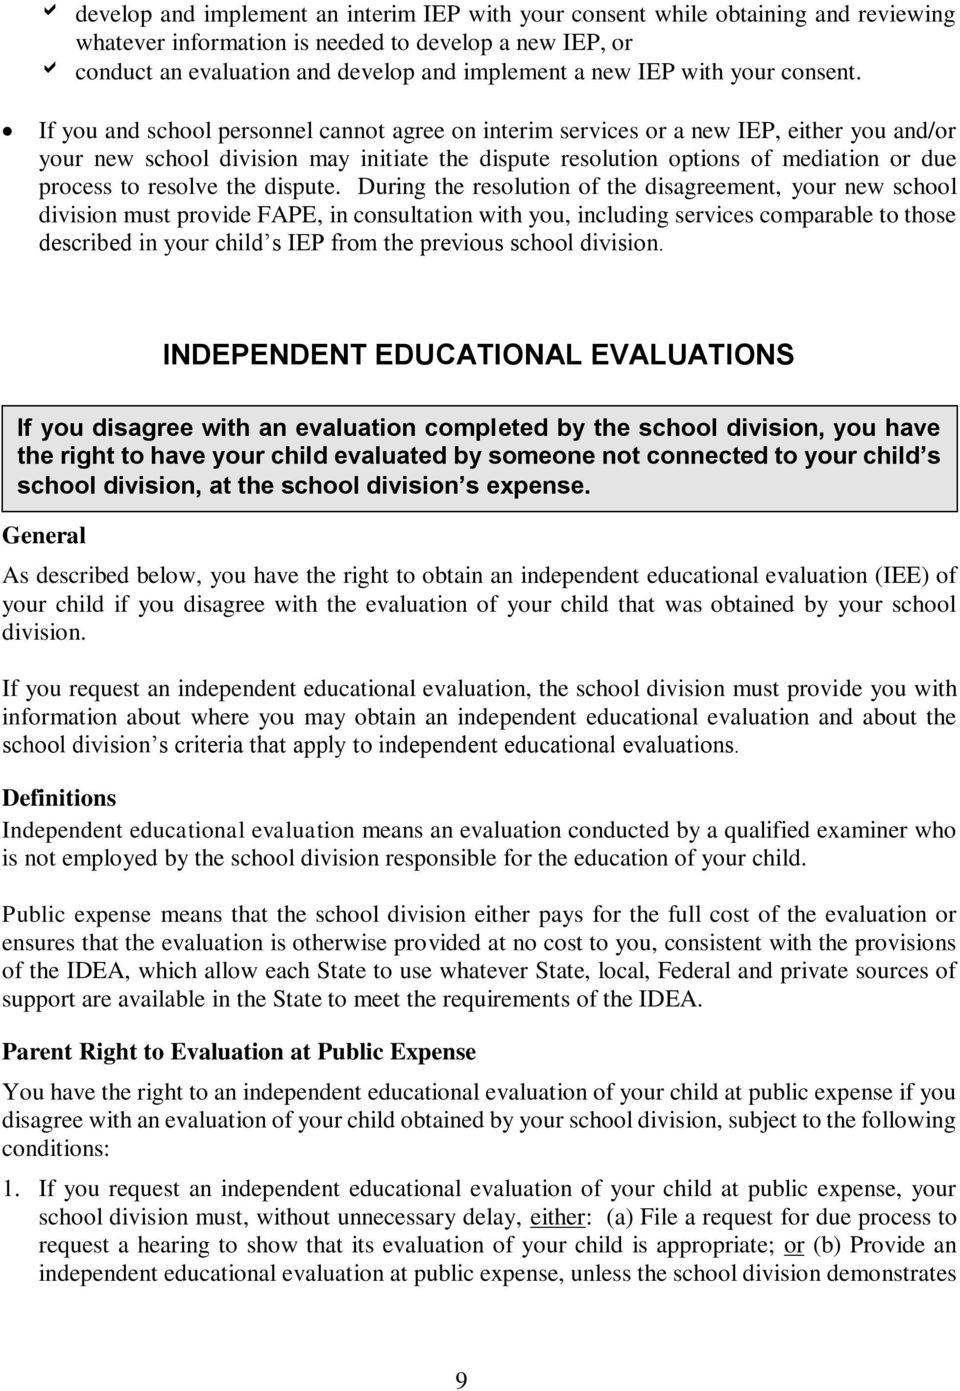 If you and school personnel cannot agree on interim services or a new IEP, either you and/or your new school division may initiate the dispute resolution options of mediation or due process to